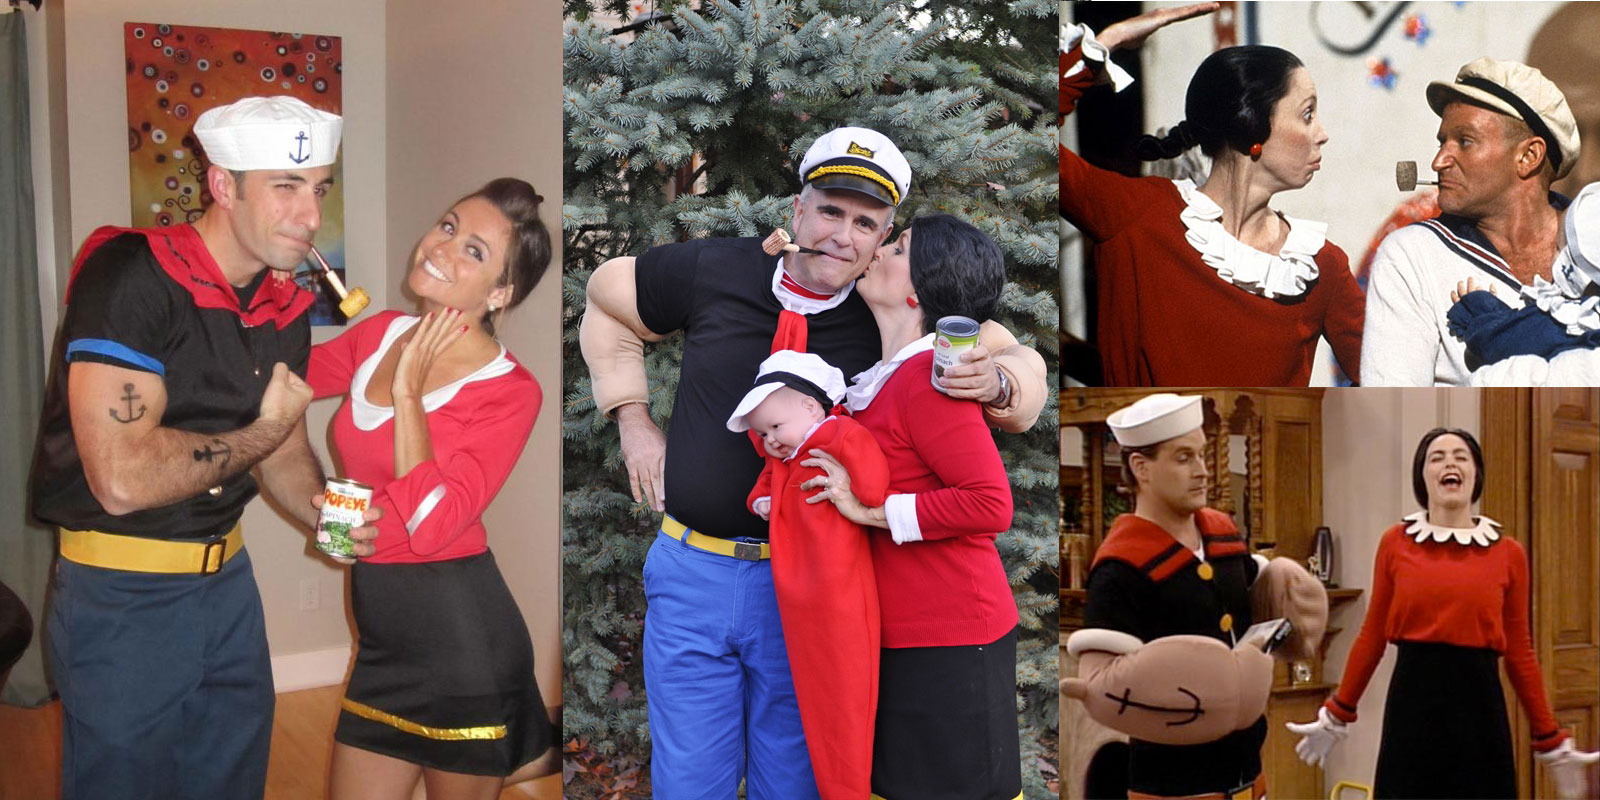 several couples dressed like popeye and olive oyl, cute couple halloween costumes, sailor outfits and hats, red jumpers and blakc skirts